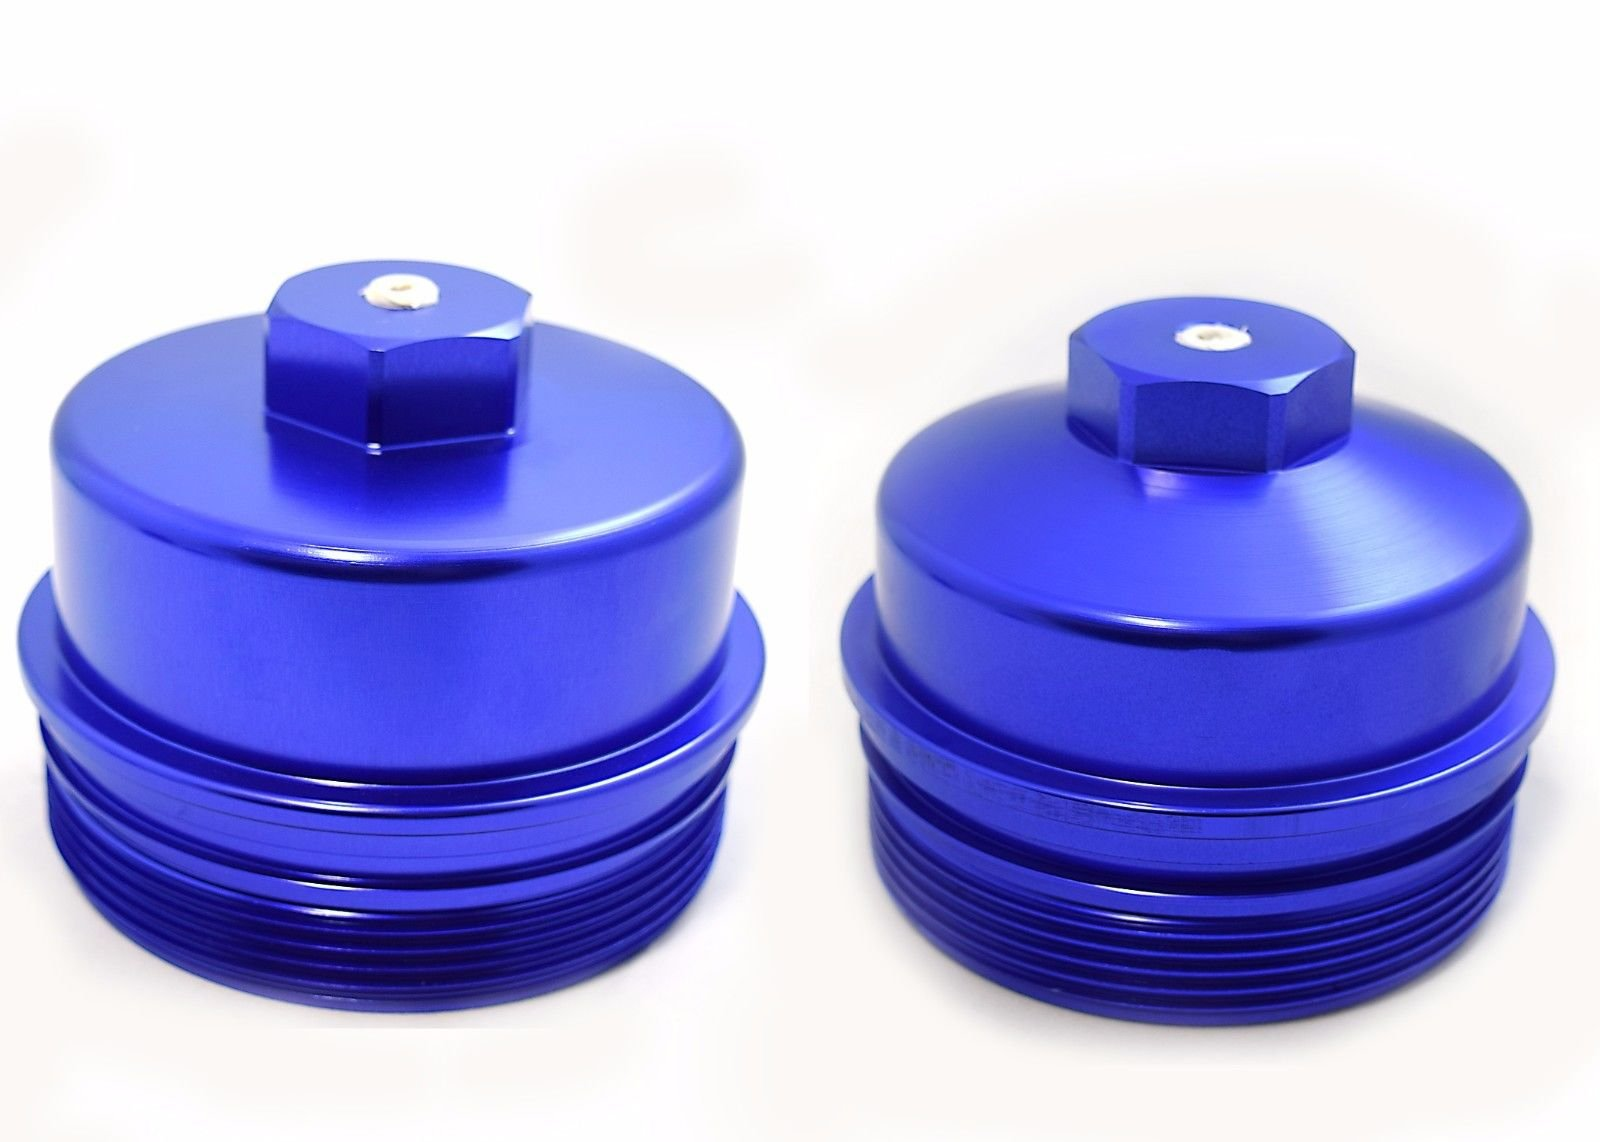 Billet Aluminum Fuel & Oil Filter Caps 2008-2010 Ford 6.4L Powerstroke Diesel by Rudy's Diesel